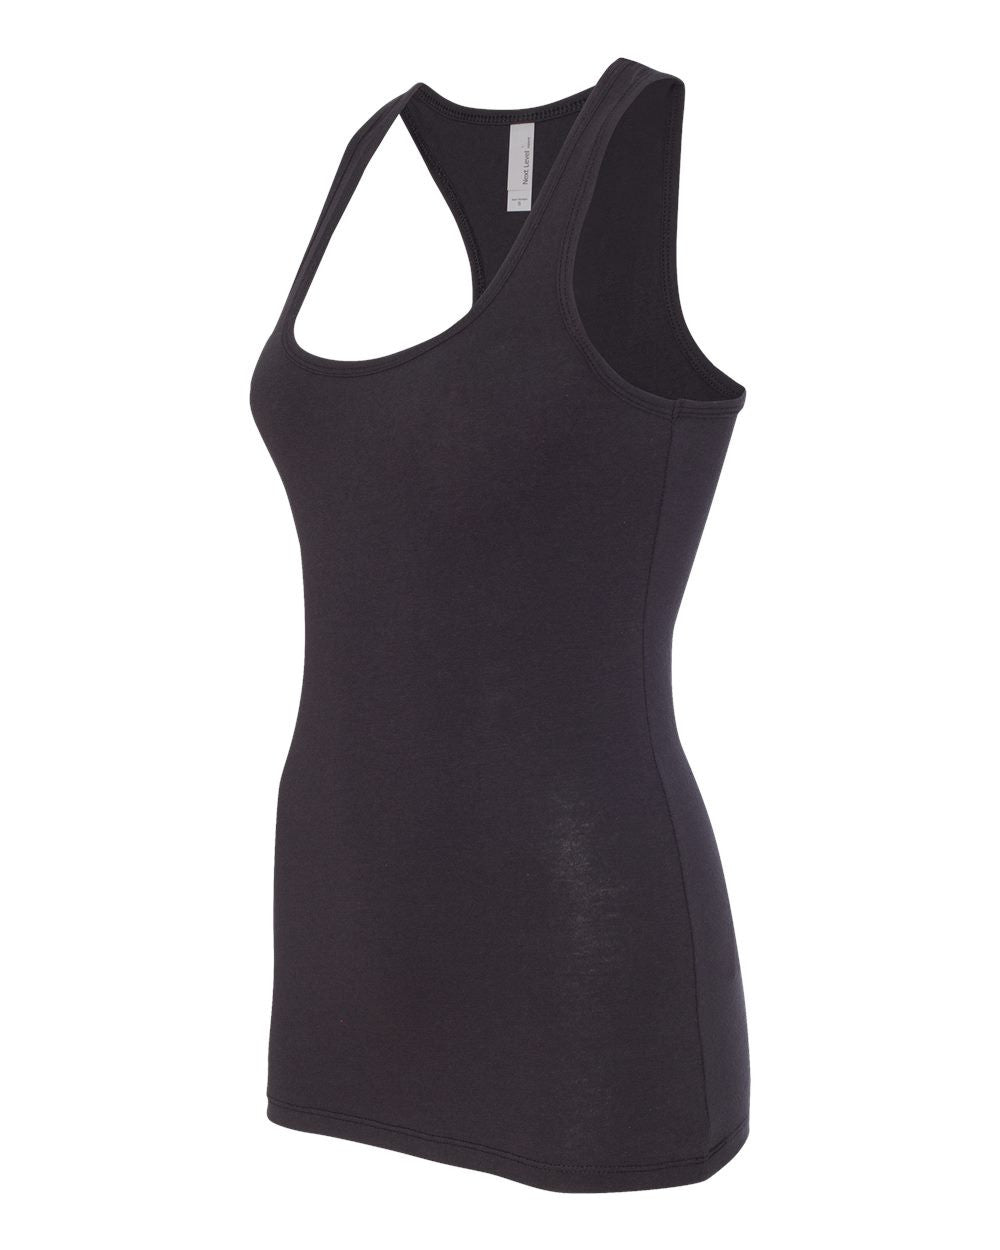 6 pack: Racerback Tank  by Next level